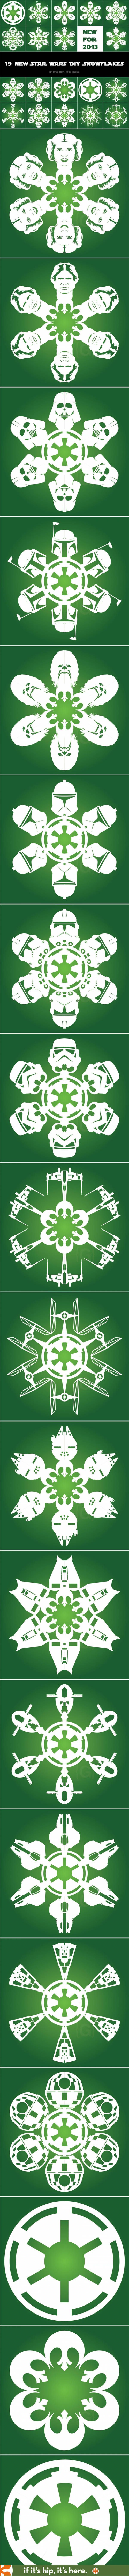 19 Awesome Star Wars DIY Snowflakes! http://www.ifitshipitshere.com/its-snowing-star-wars-again-19-new-star-wars-diy-snowflake-templates-for-2013/